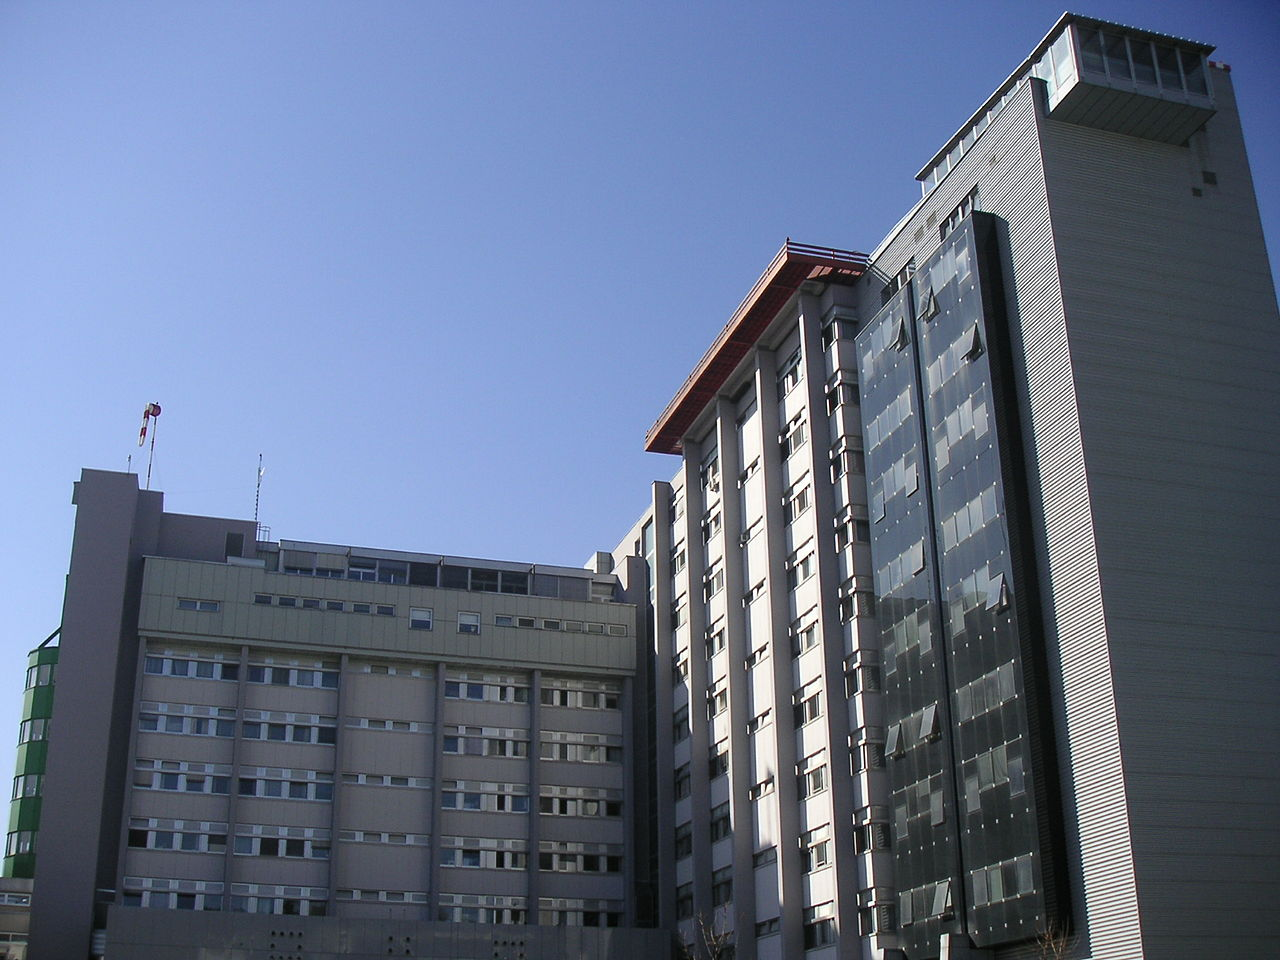 Hospital graz surgical tower